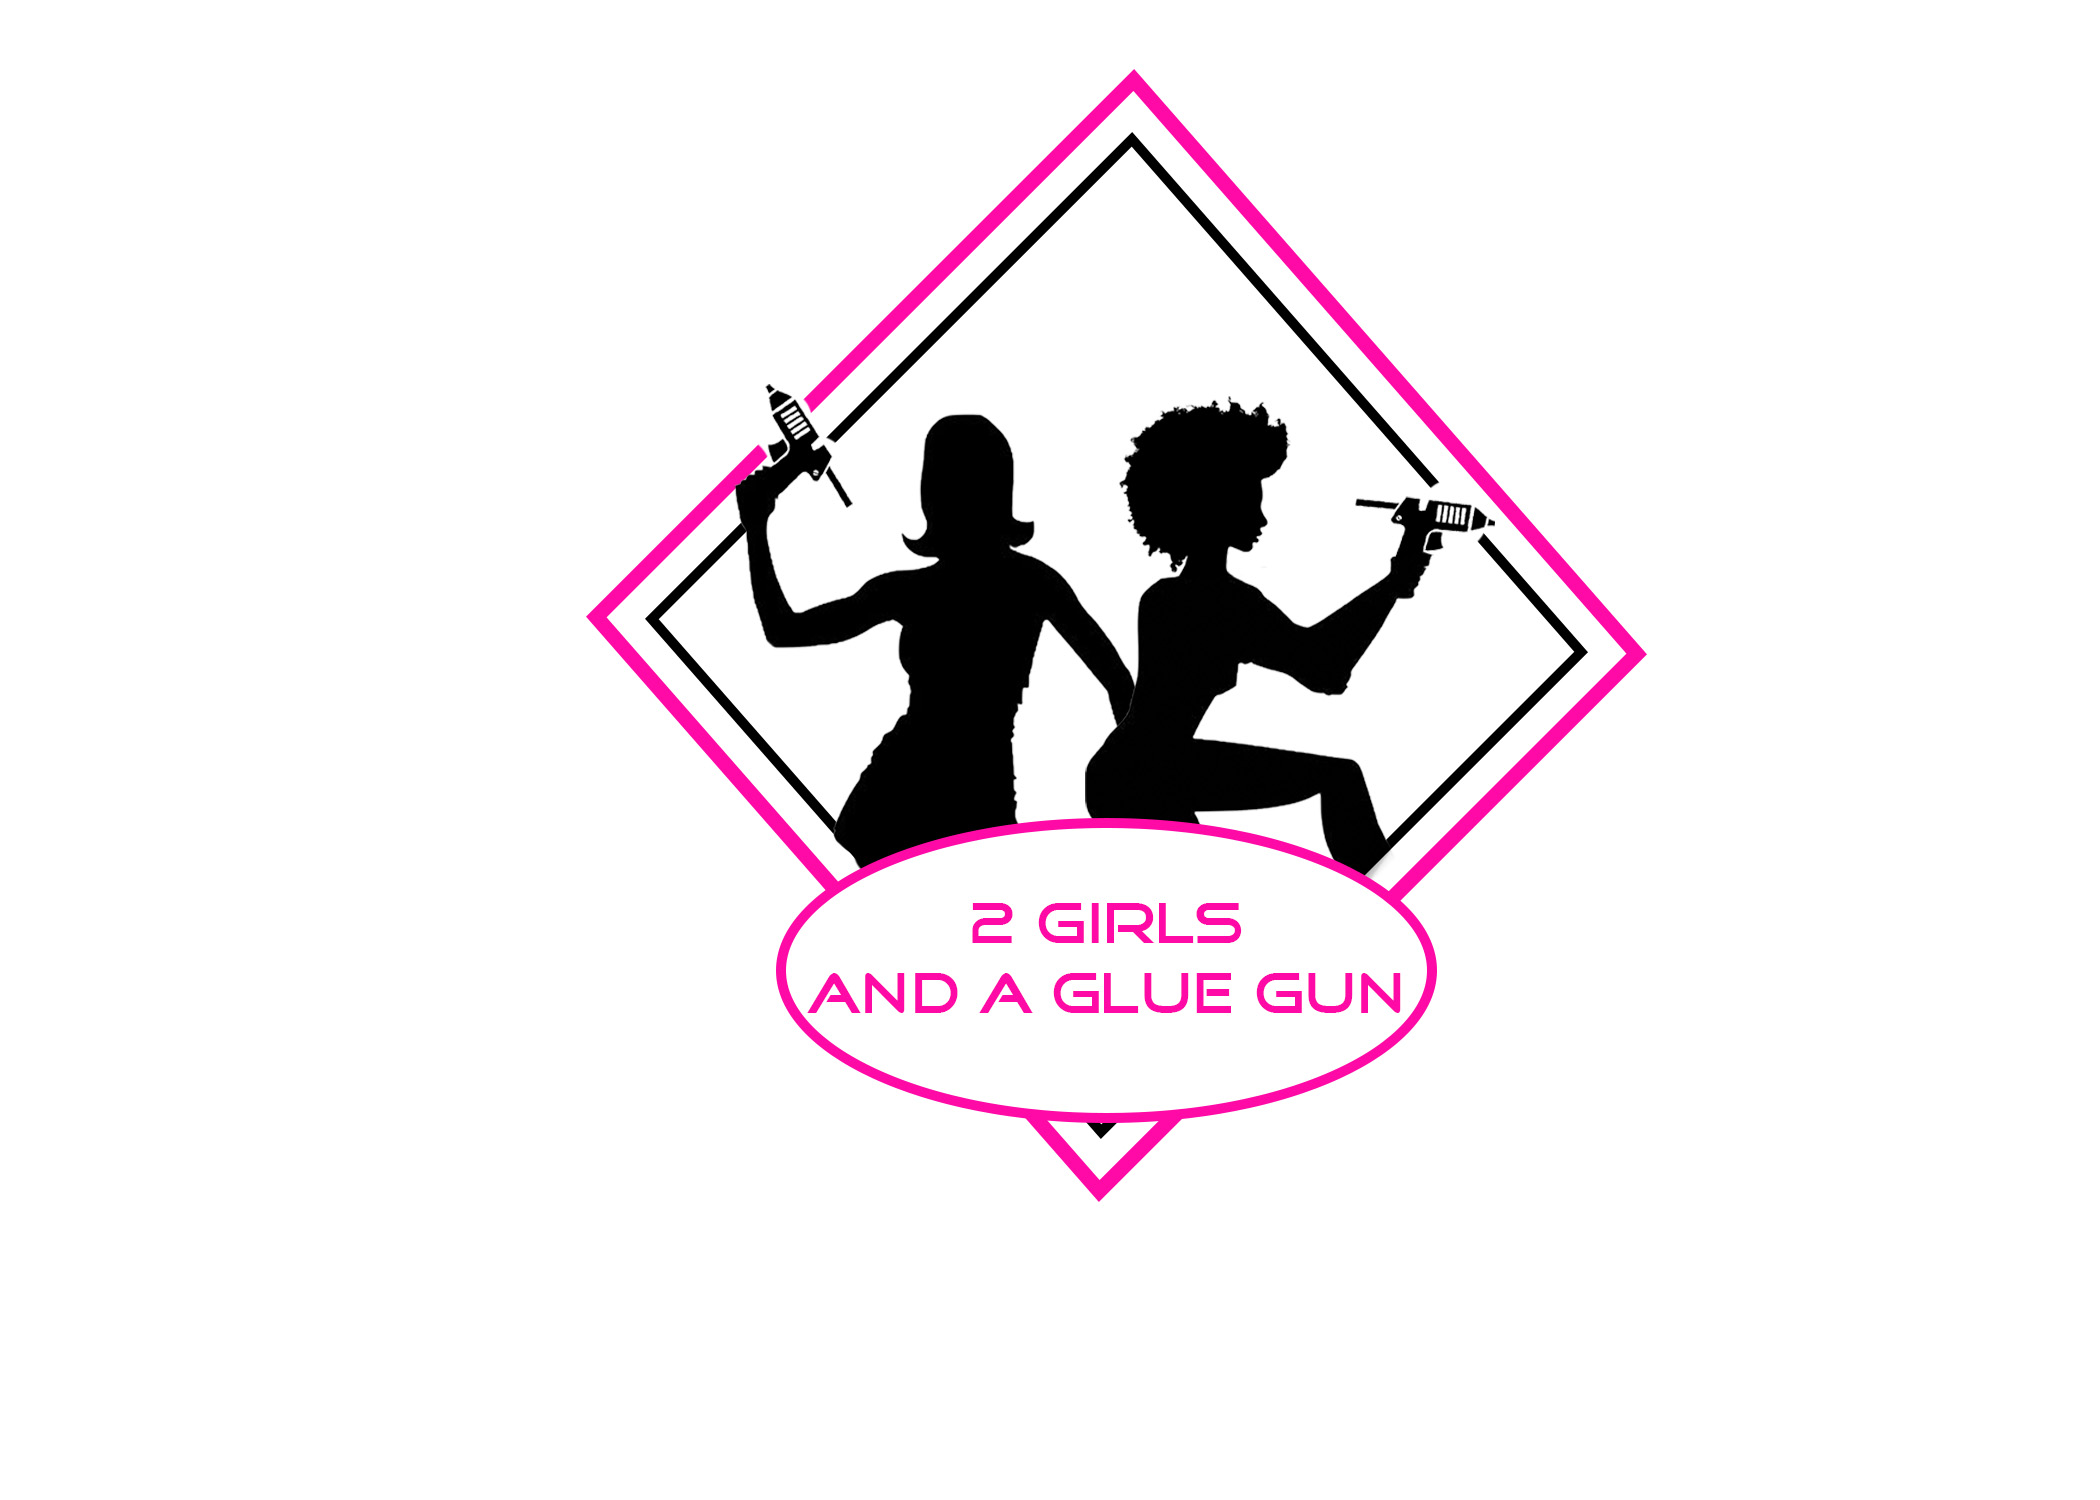 2 Girls and a Glue Gun